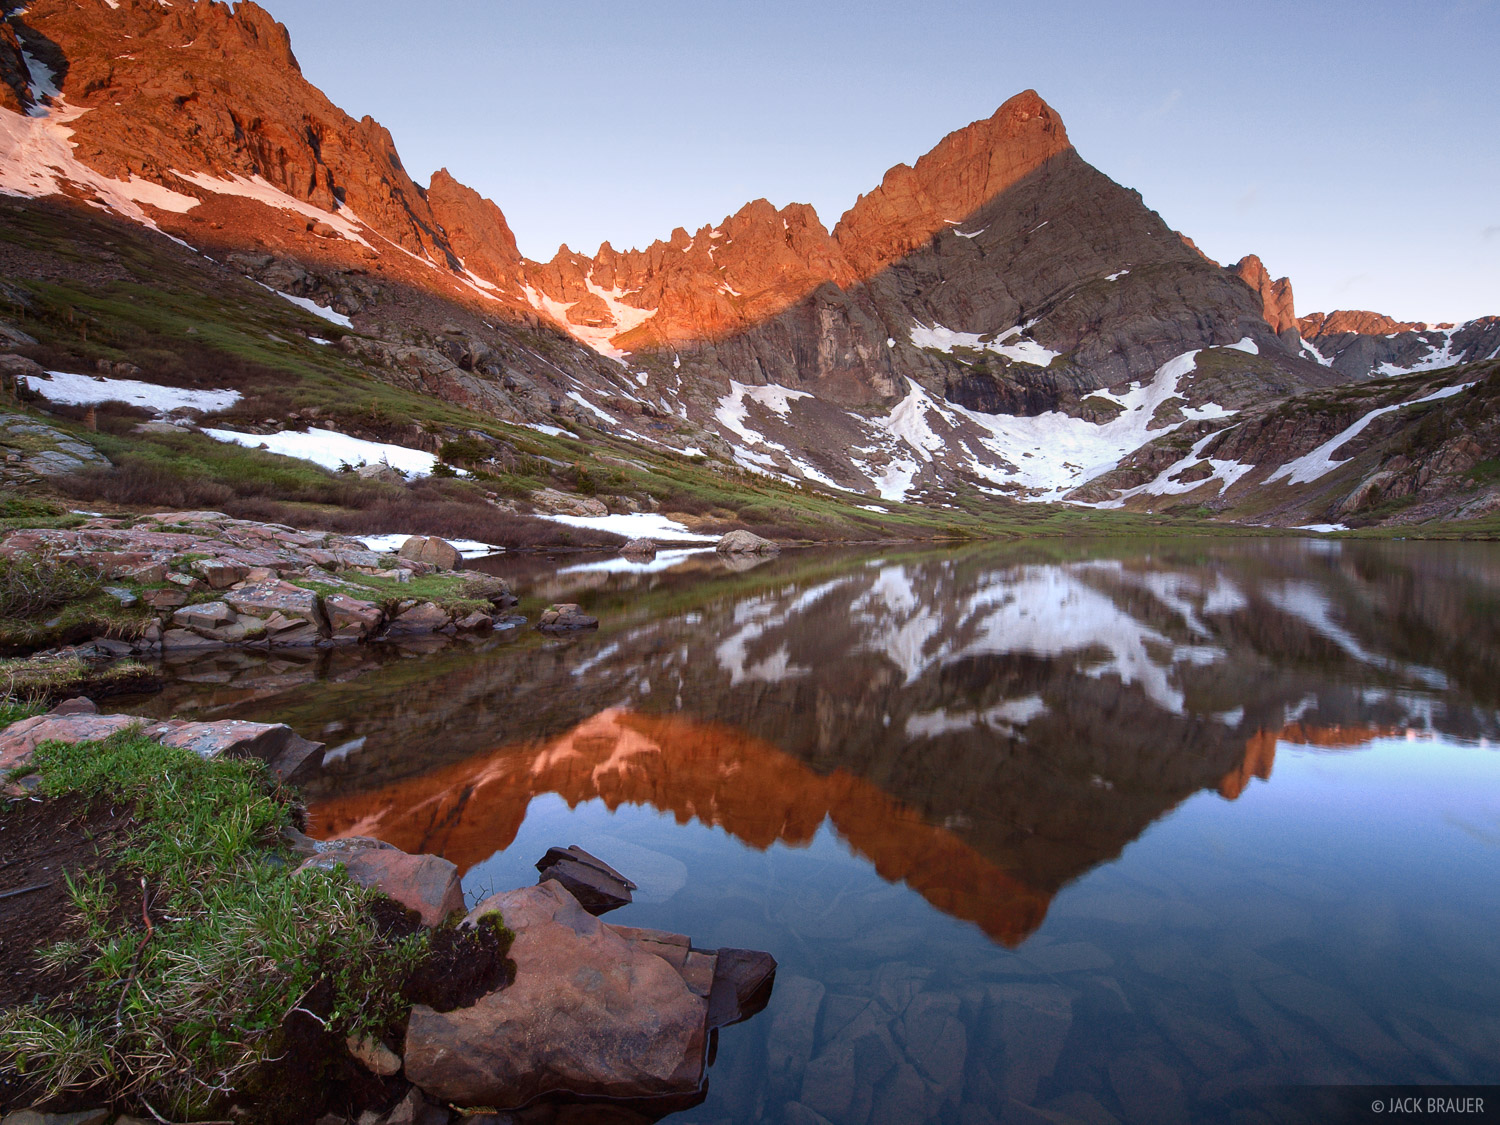 Crestone Needle, sunrise, South Colony Lake, Sangre de Cristos, Colorado, Sangre de Cristo Wilderness, photo